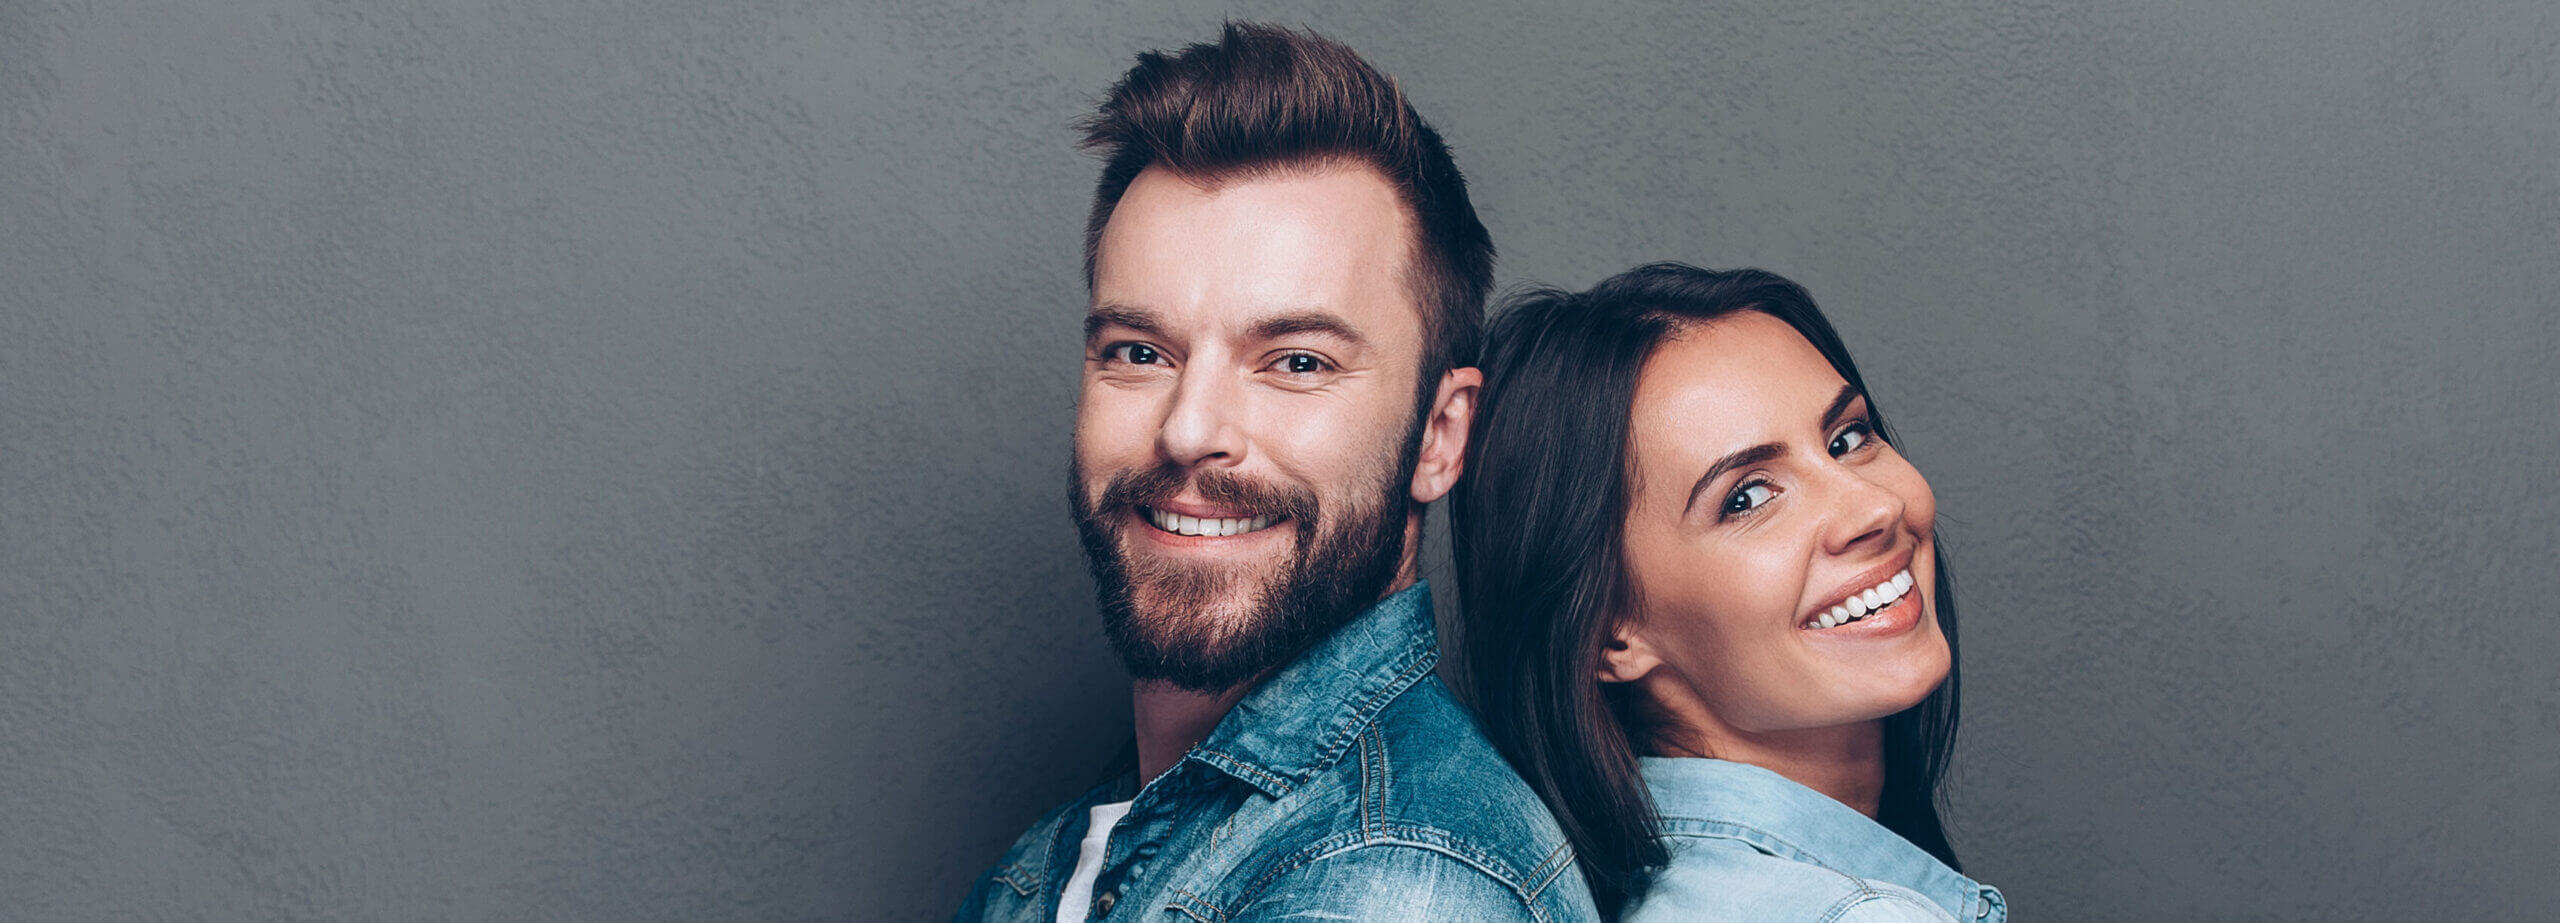 Man and woman standing back to back smiling